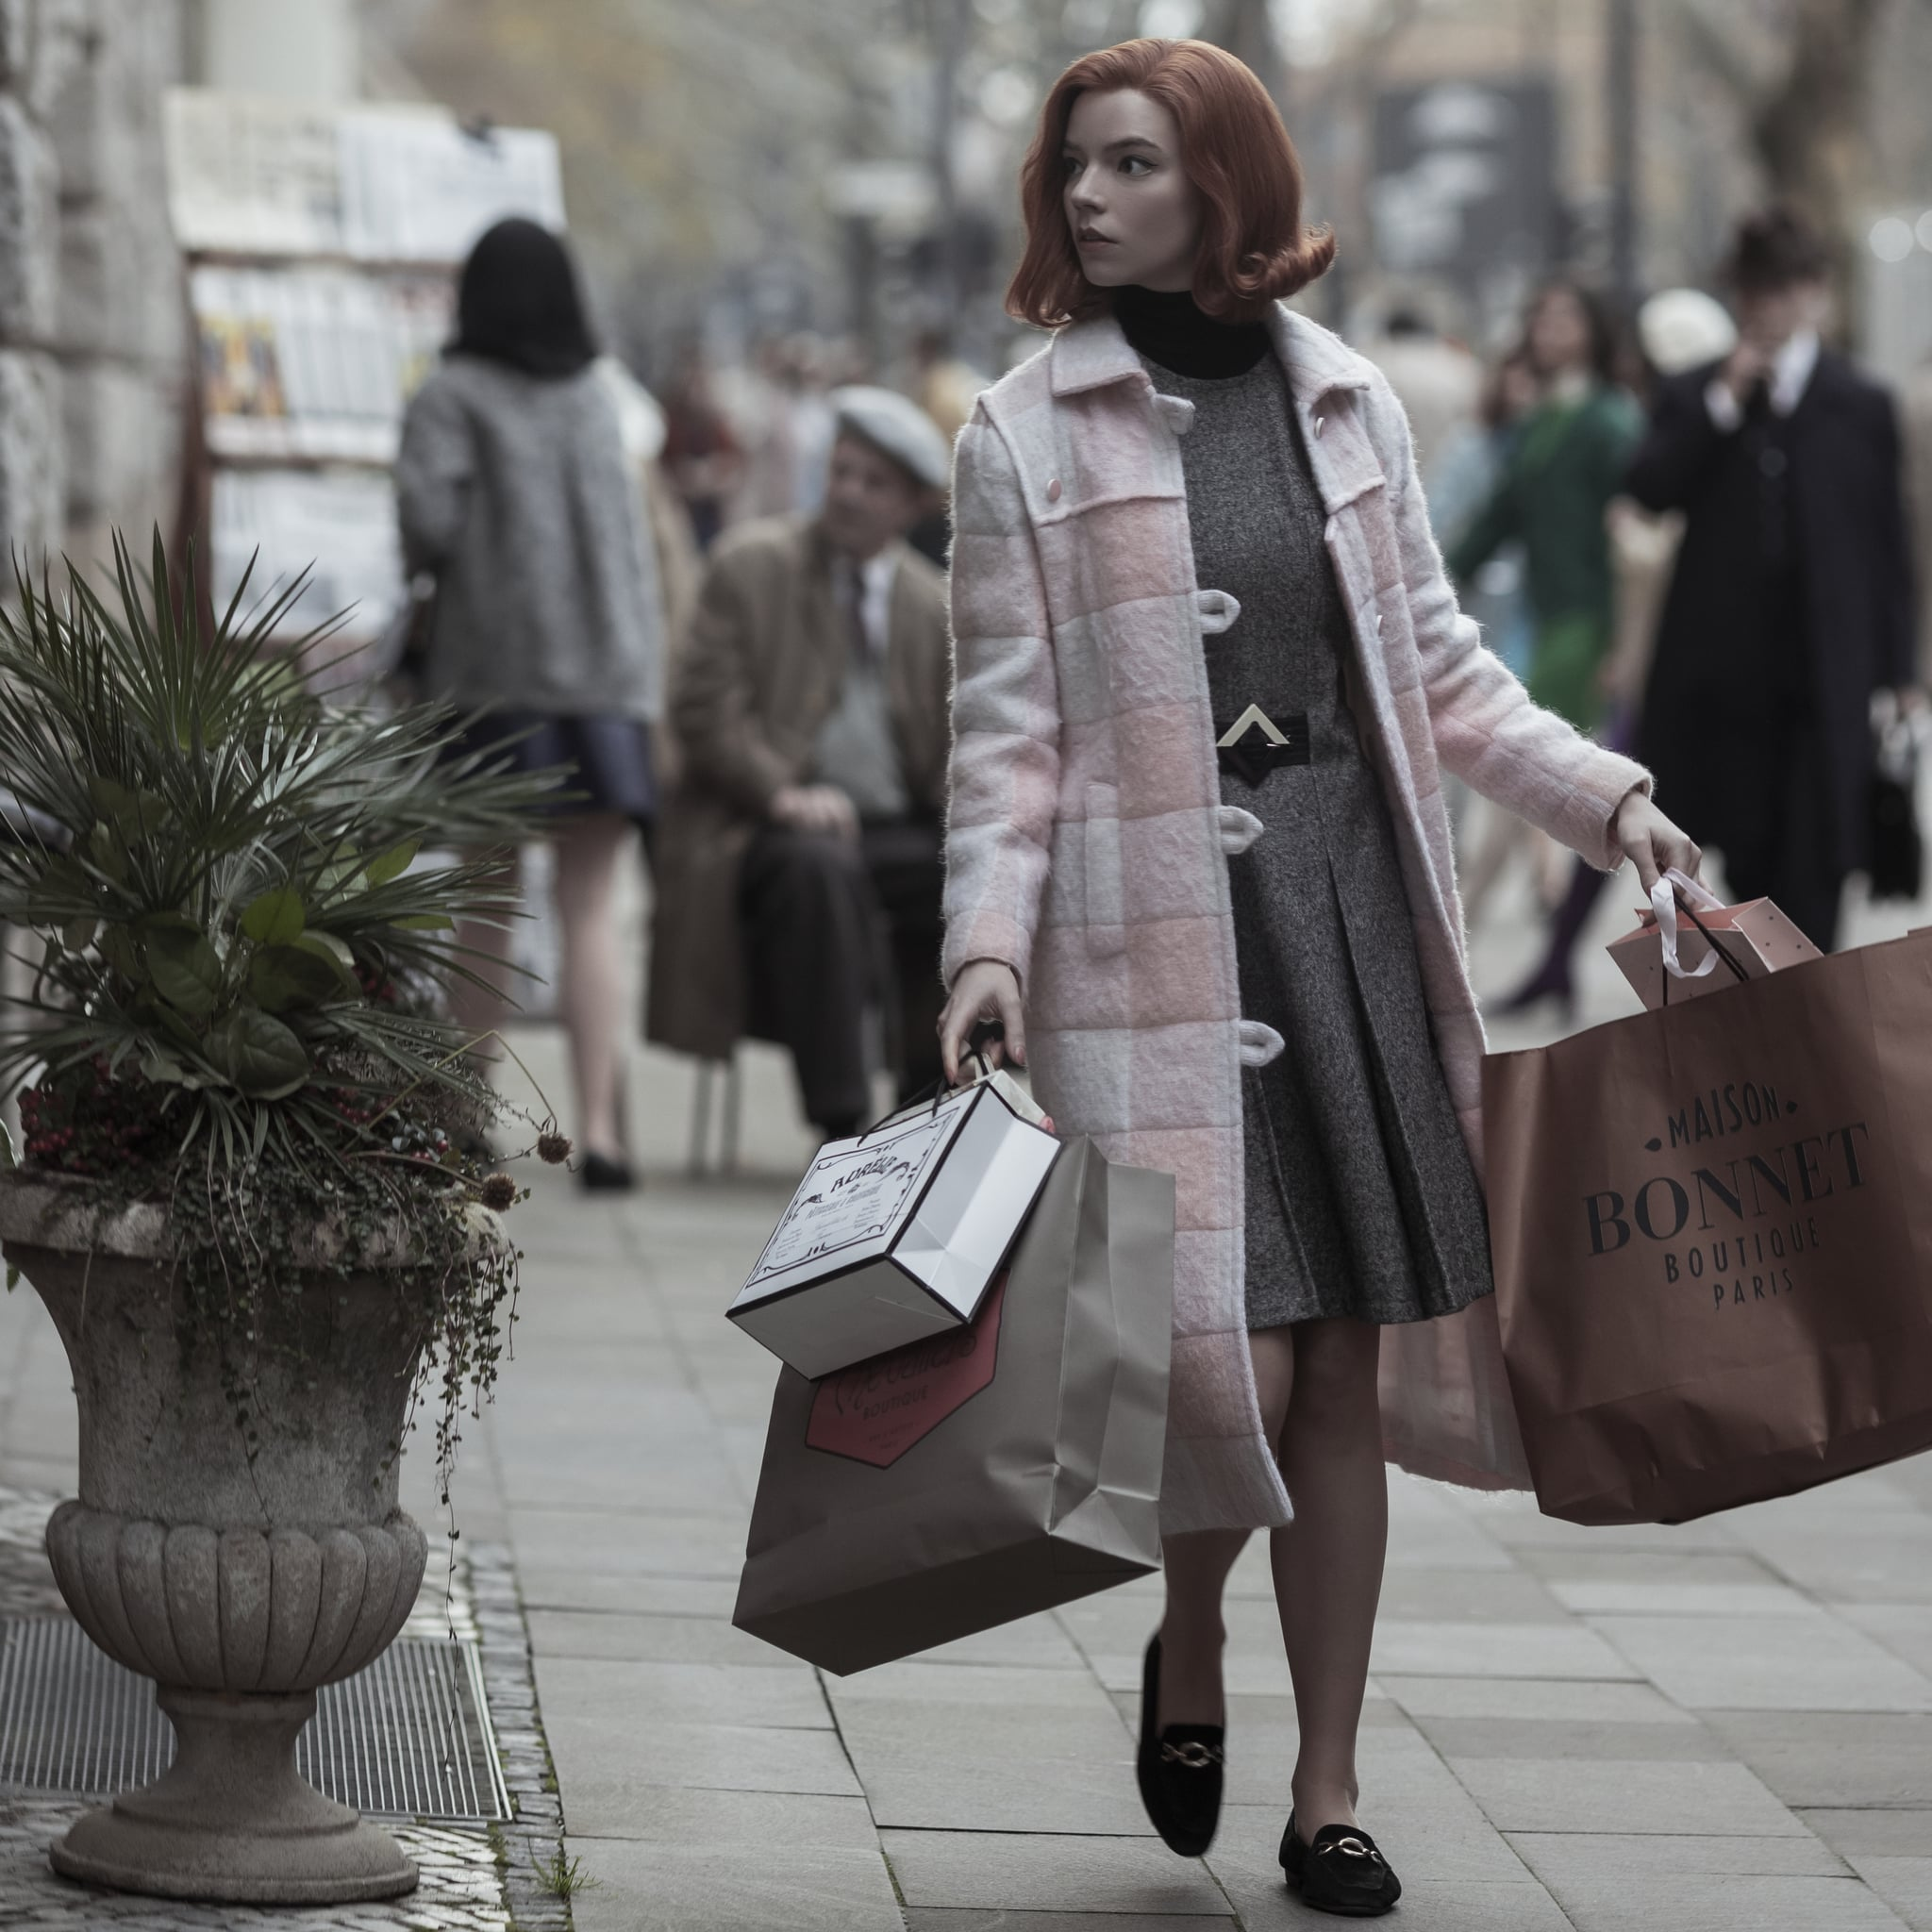 Knitted Pink Wool Blazer for the Fashionable Business Woman Retro Style Ruffled Collared Jacket